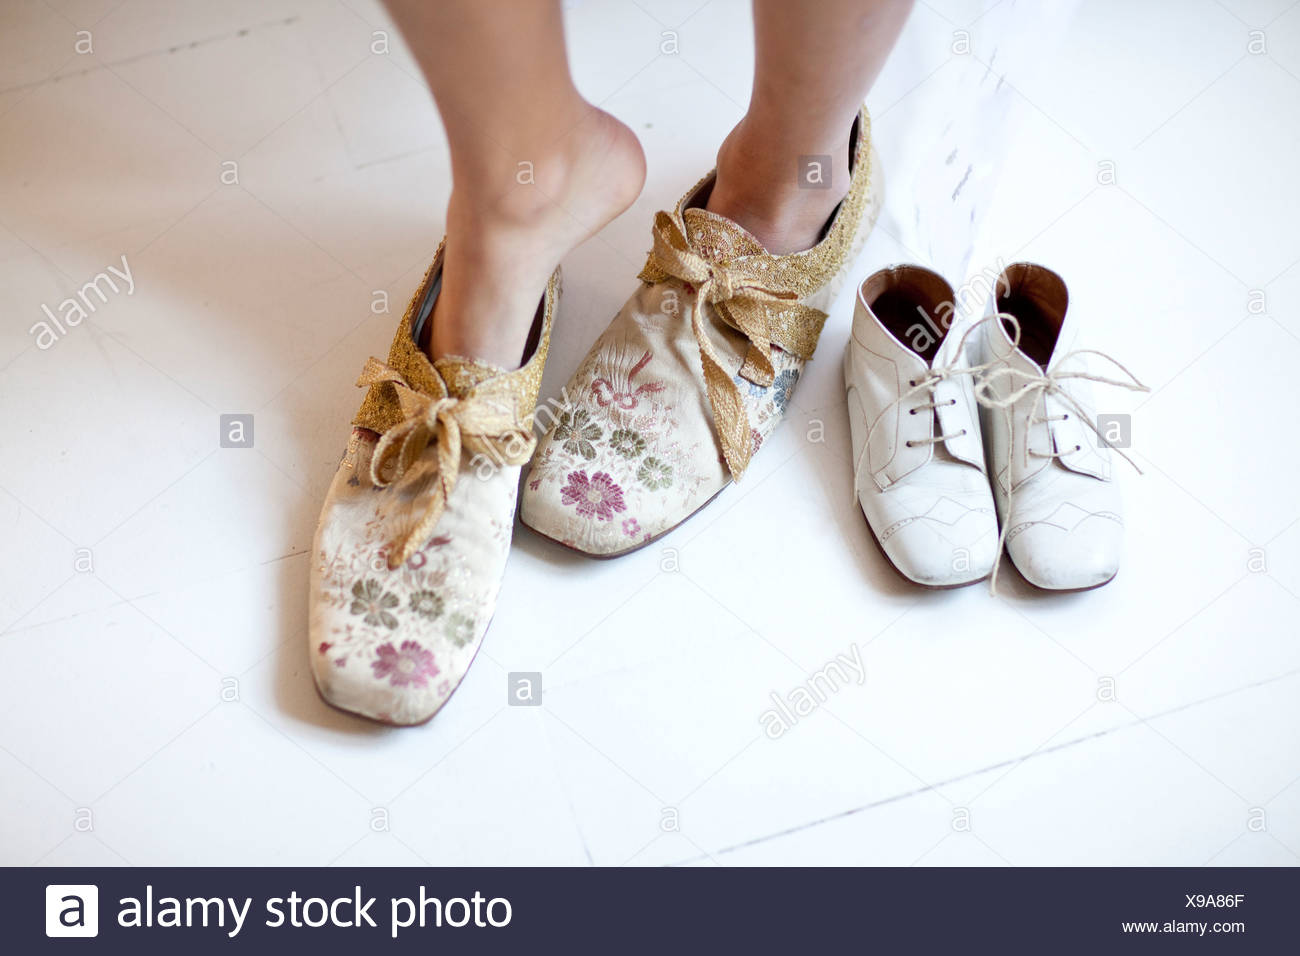 Woman putting on floral shoes Stock Photo